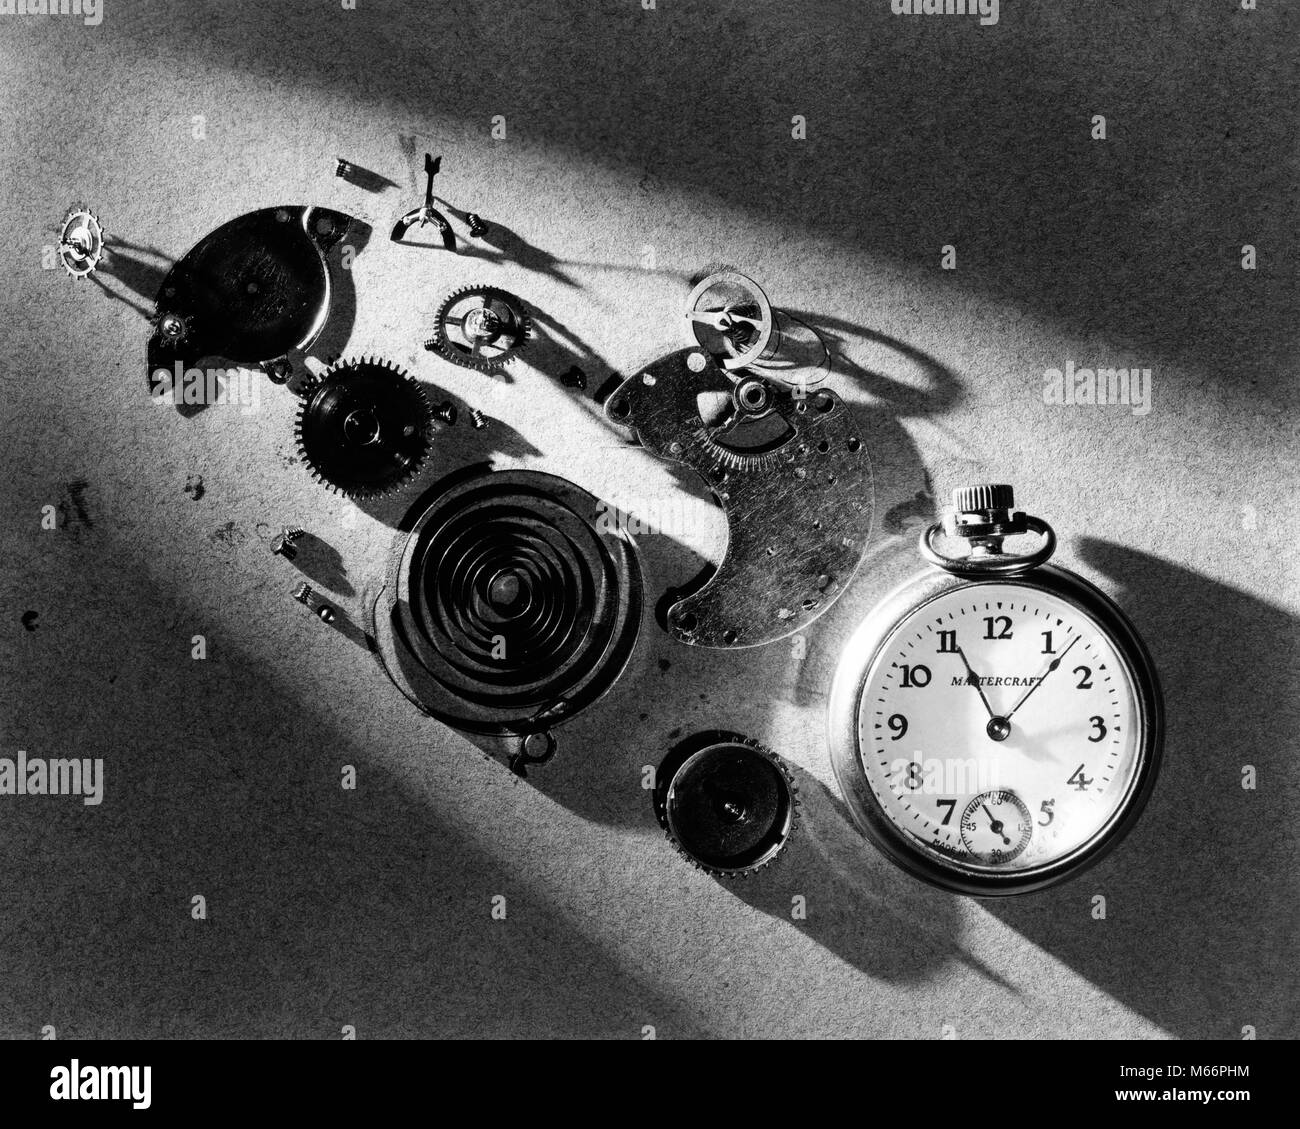 1940s POCKET WATCH AND PARTS SPRINGS GEARS MECHANISM IN DRAMATIC LIGHT - s10161 HAR001 HARS TIMEPIECE - Stock Image